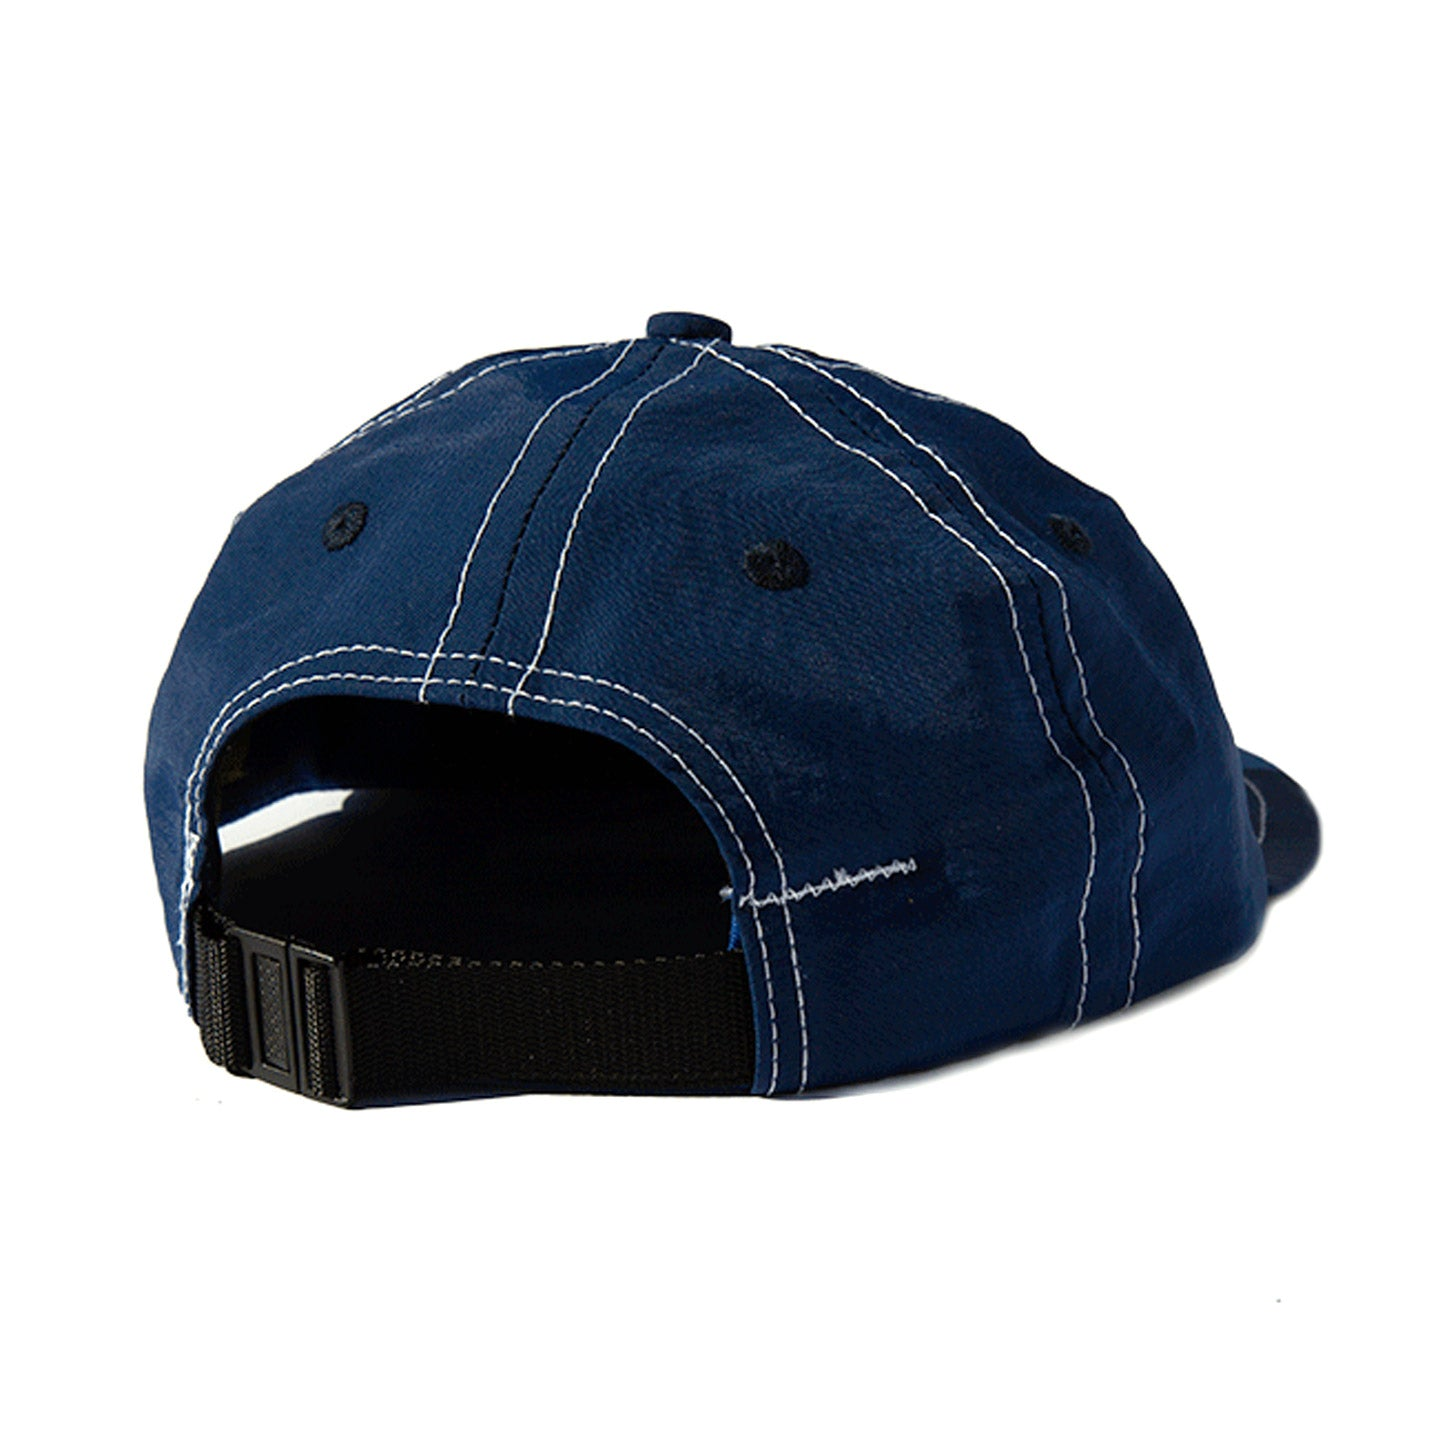 LITE YEAR SIX PANEL CAP NAVY NYLON TASLAN